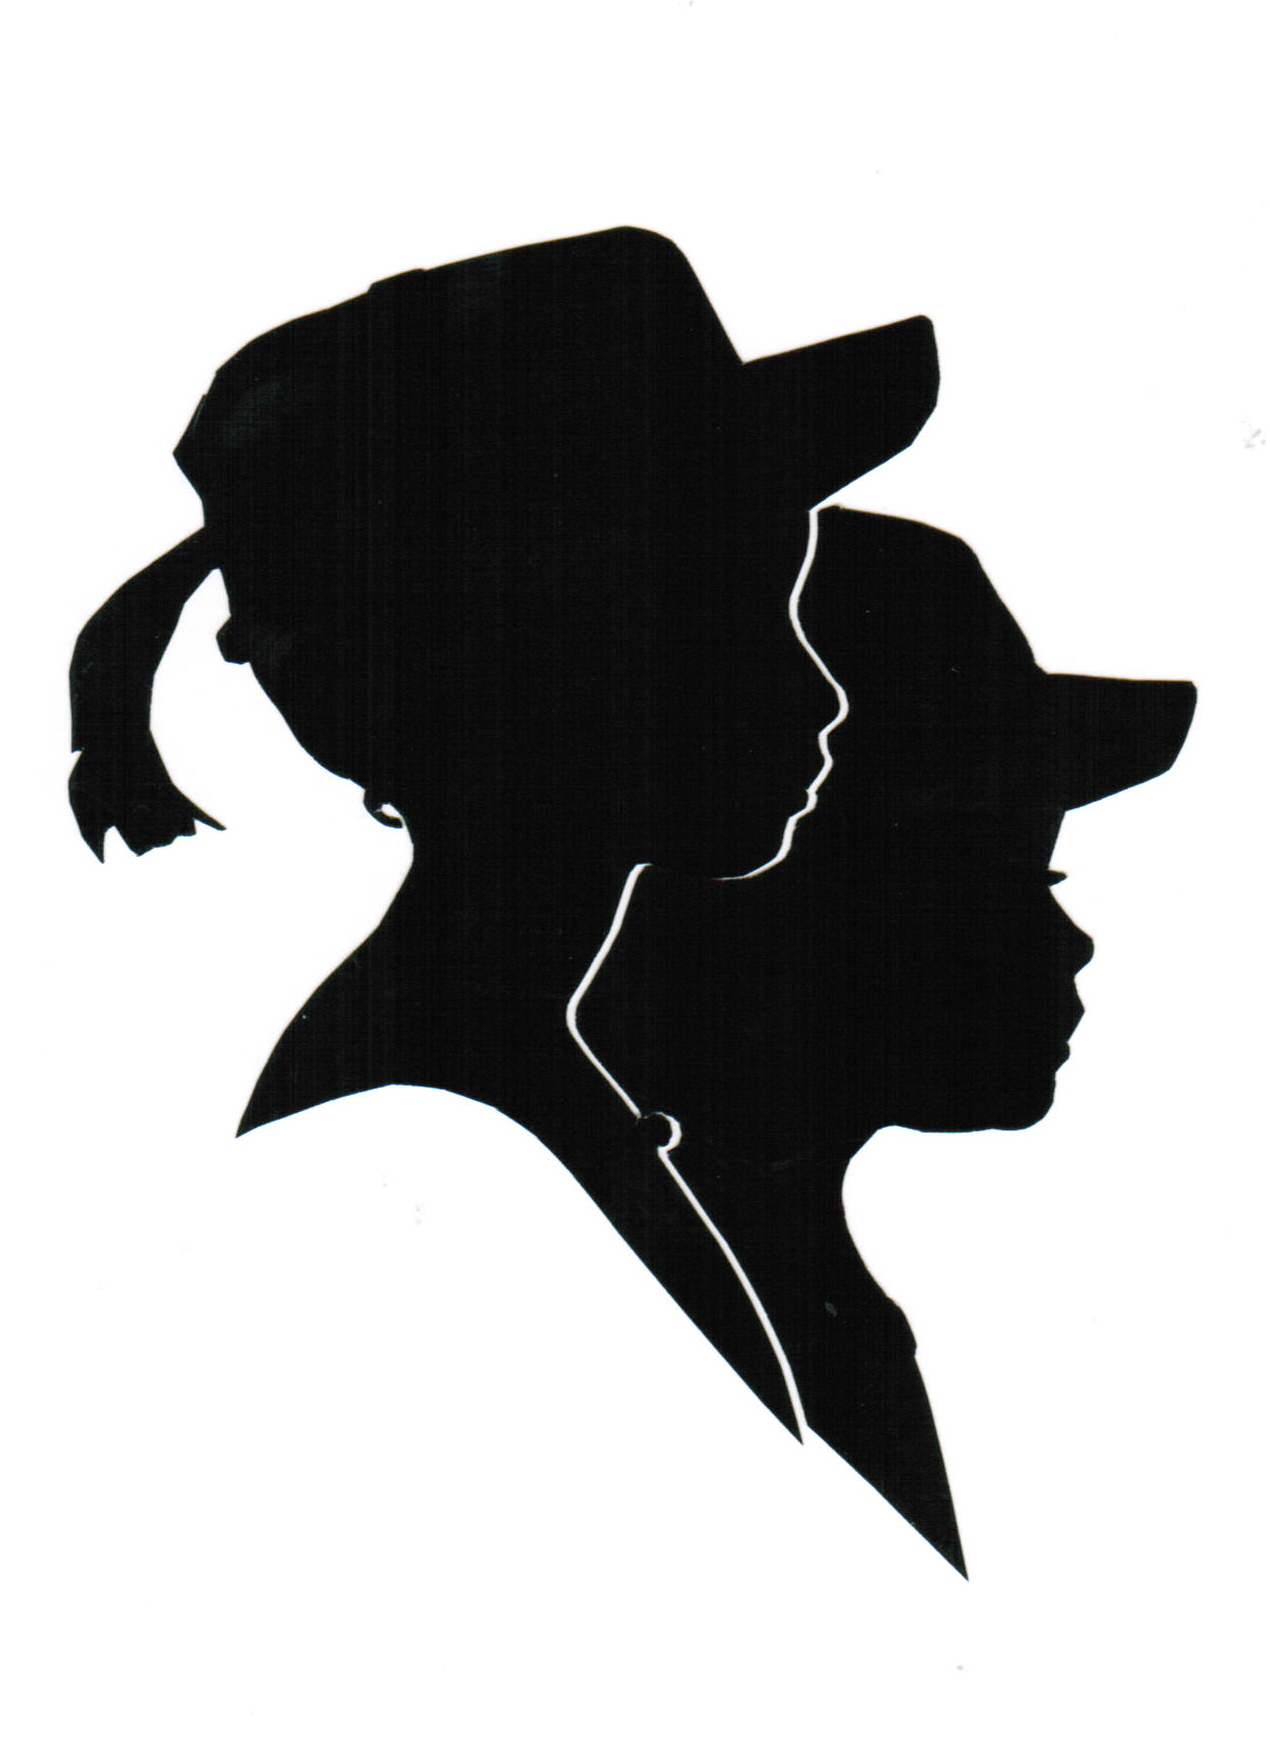 1270x1752 Silhouette Portraits By Edwarddouble Silhouettes